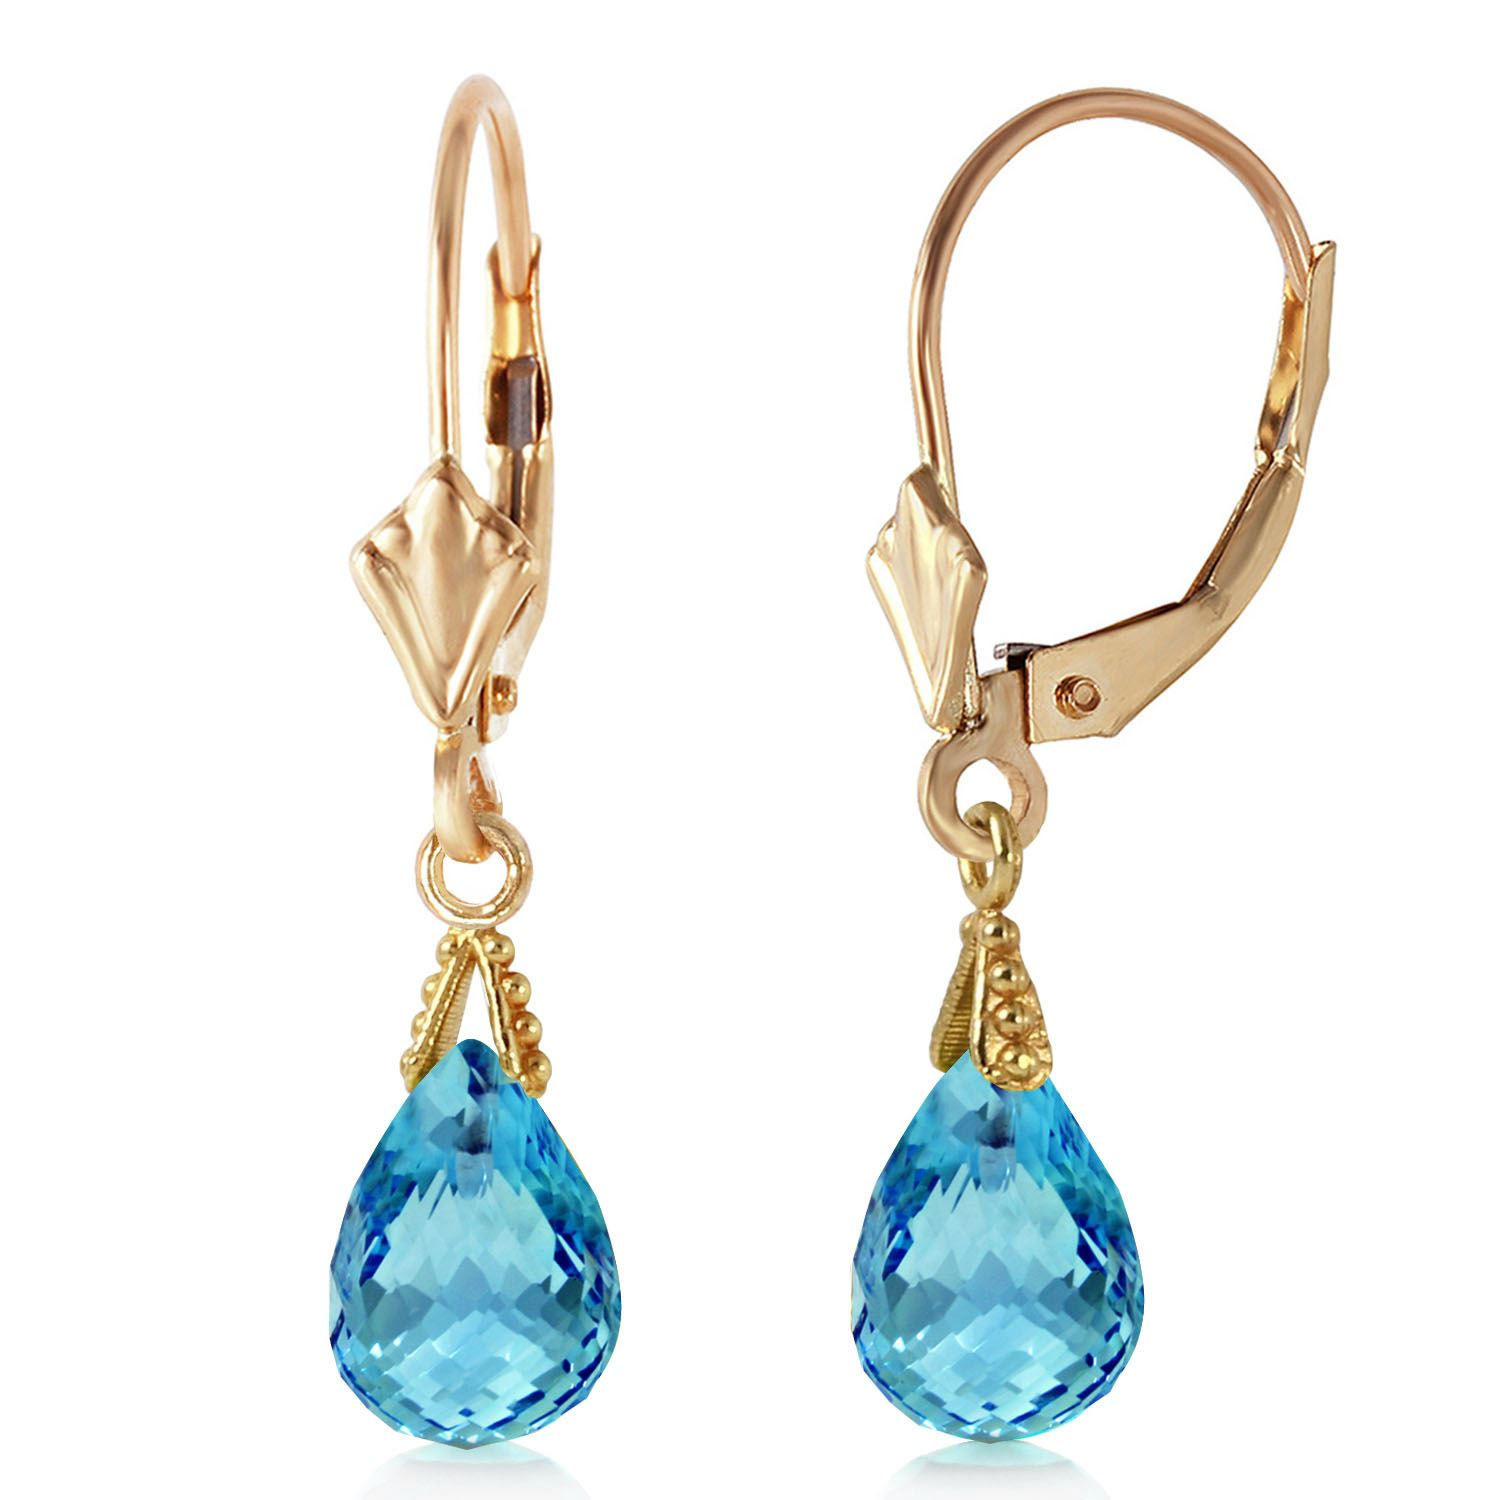 carats earrings dp rhodium finish amazon topaz com jewelry drop in cut london blue silver cushion sterling